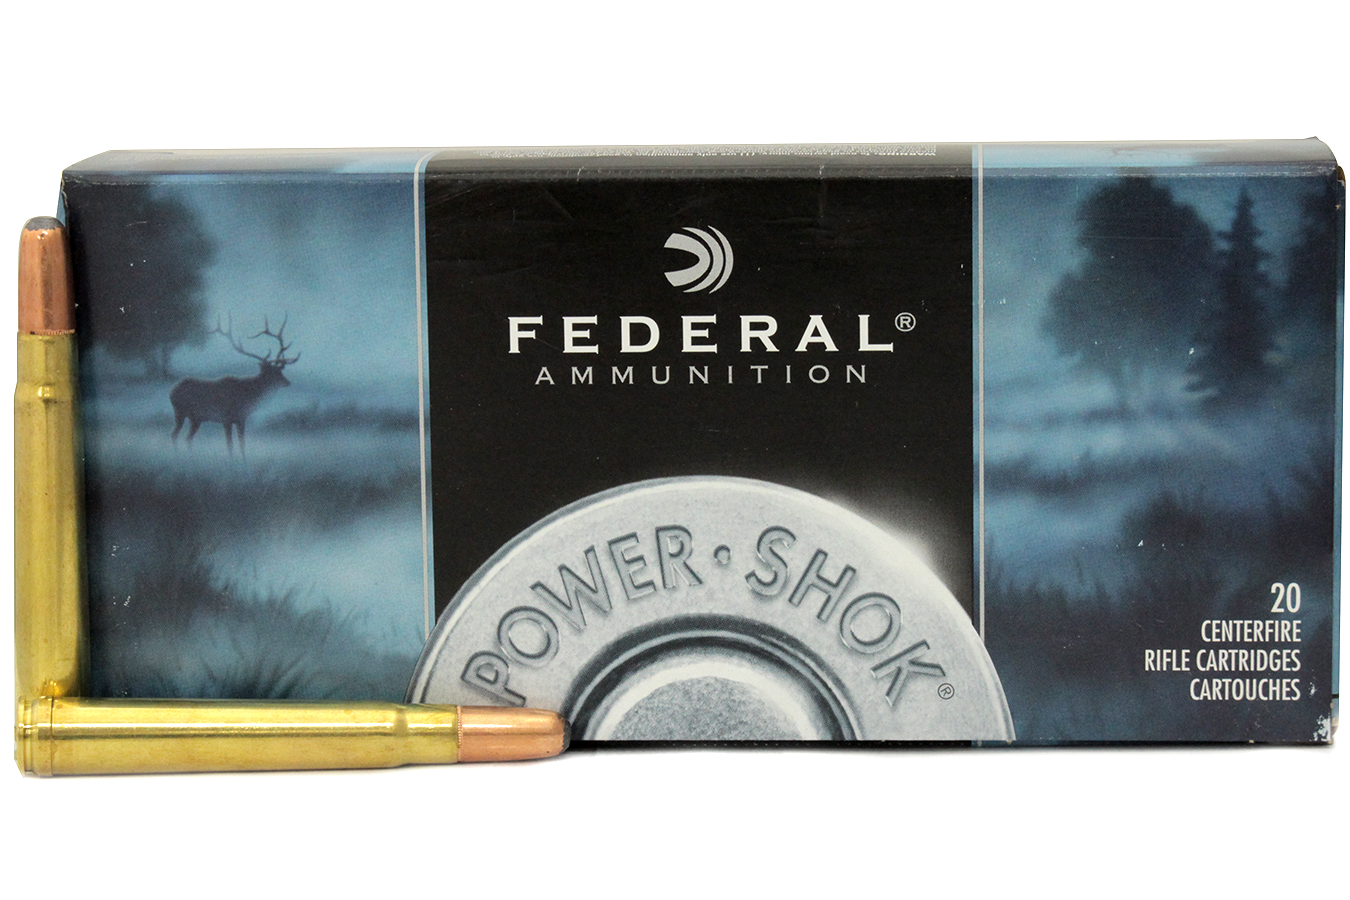 FEDERAL AMMUNITION 375 HH MAG 300 GR SP POWER-SHOK